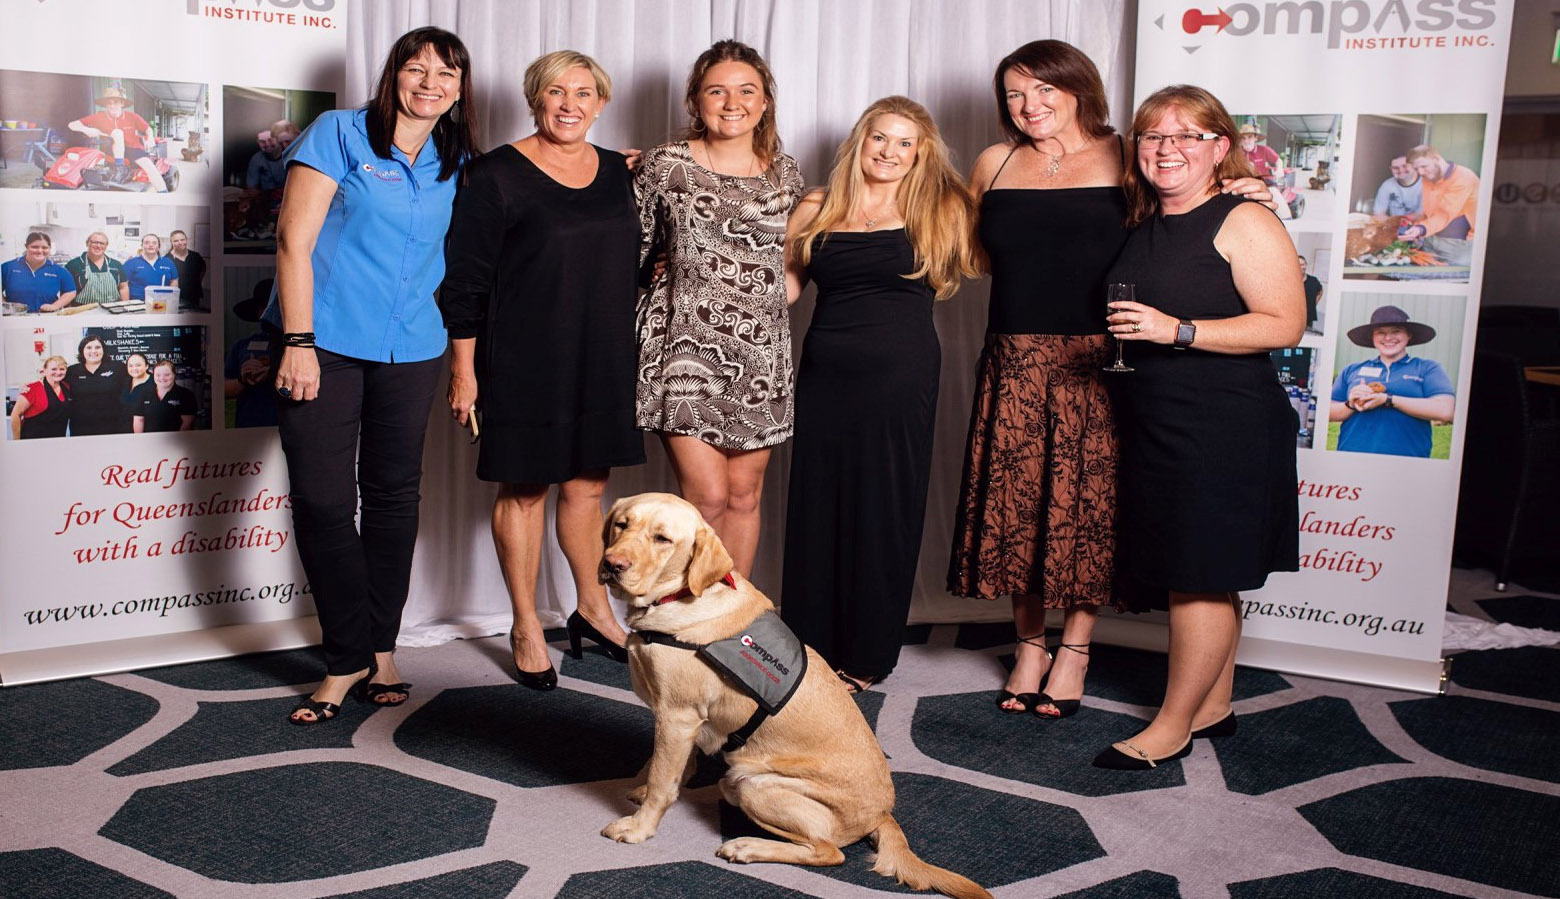 Sharon Chapman in group photo of volunteers at the Compass Gala